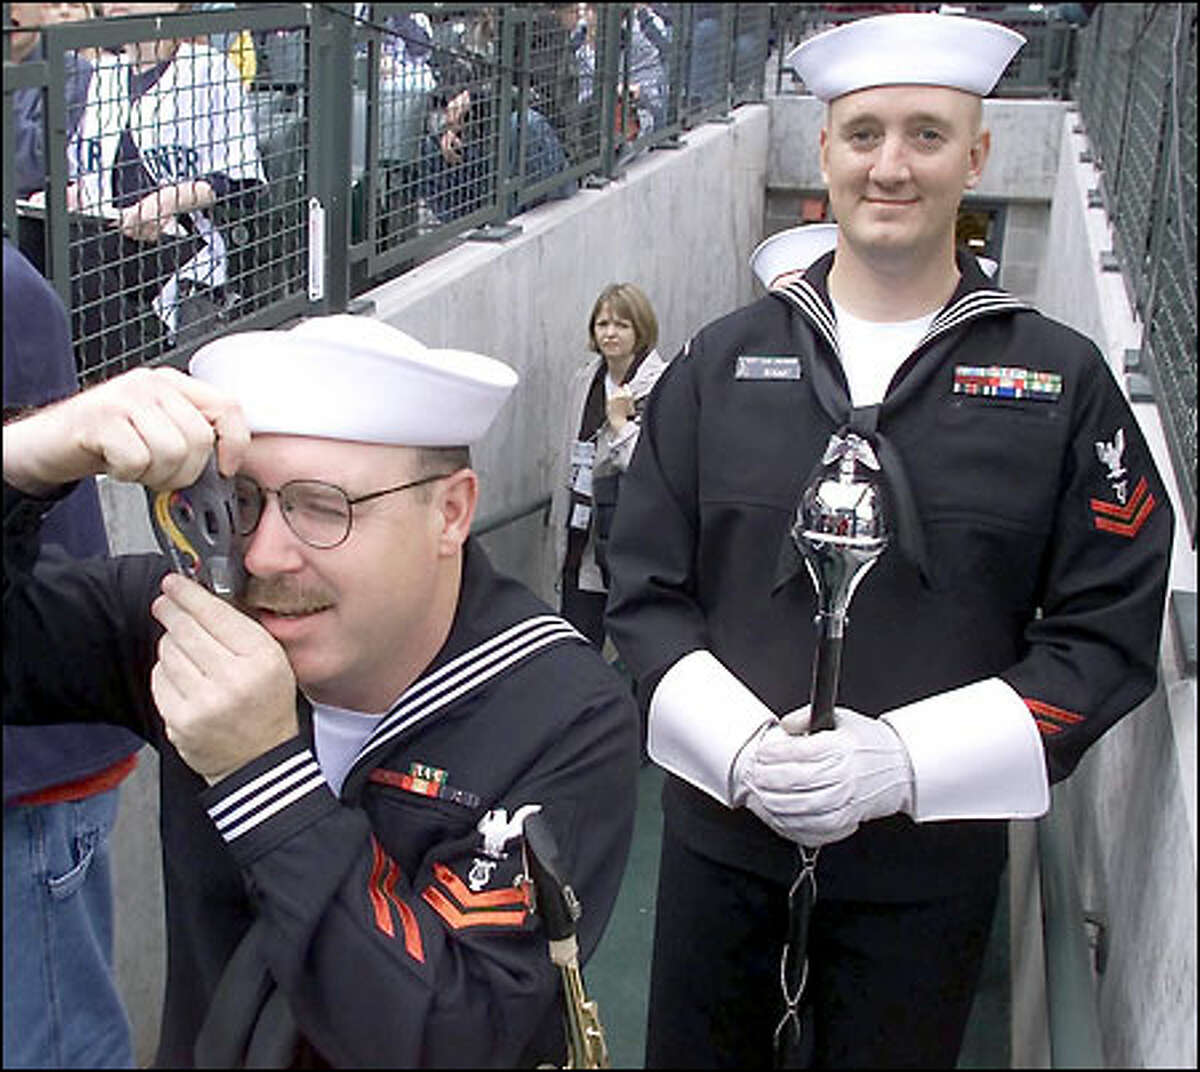 Navy Band Northwest members from Bangor sneak a peek at the Mariners.